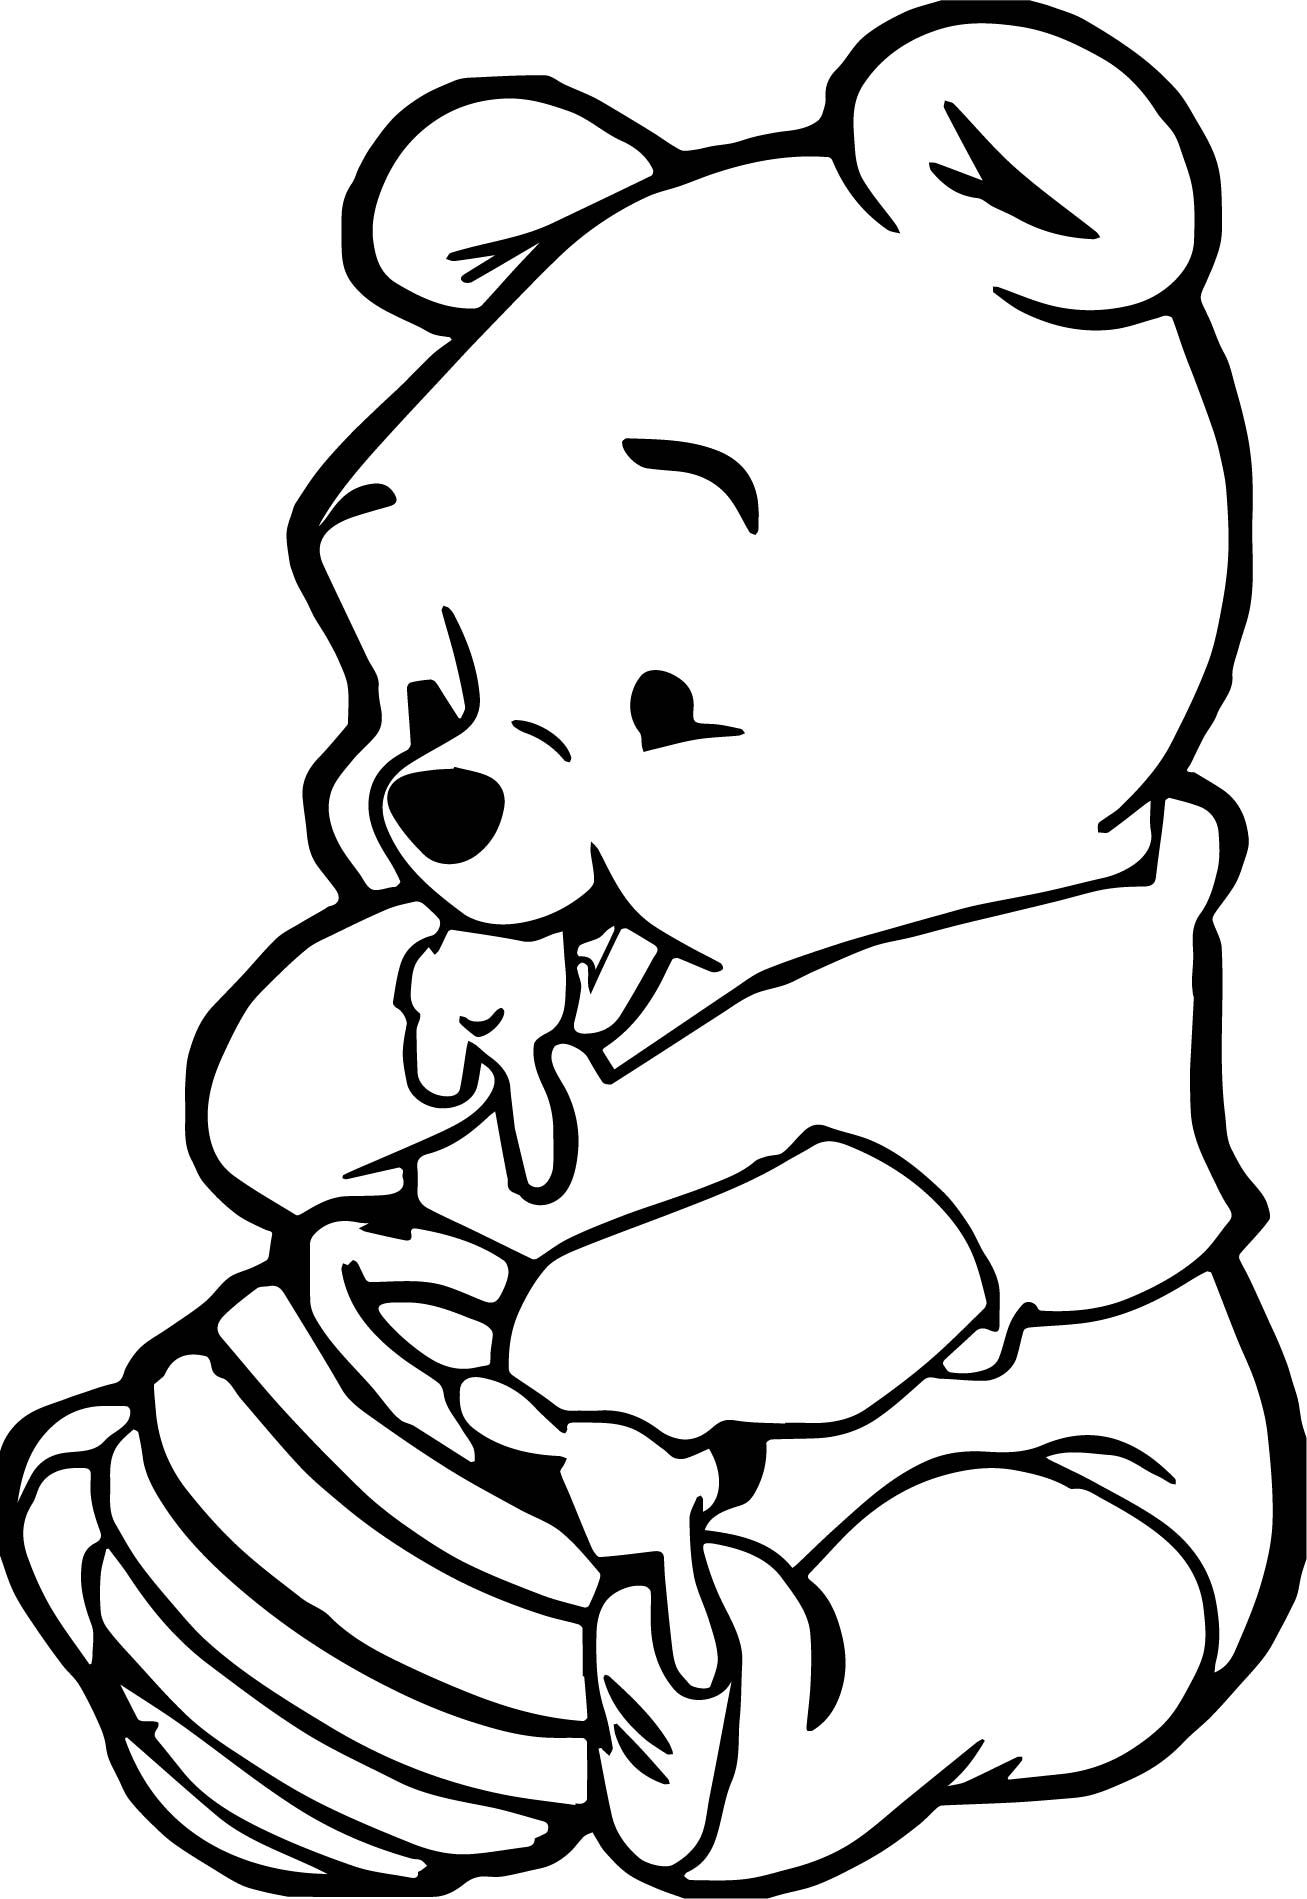 disney cute easy coloring pages cute baby winnie the pooh eating hunny coloring page easy disney coloring pages cute